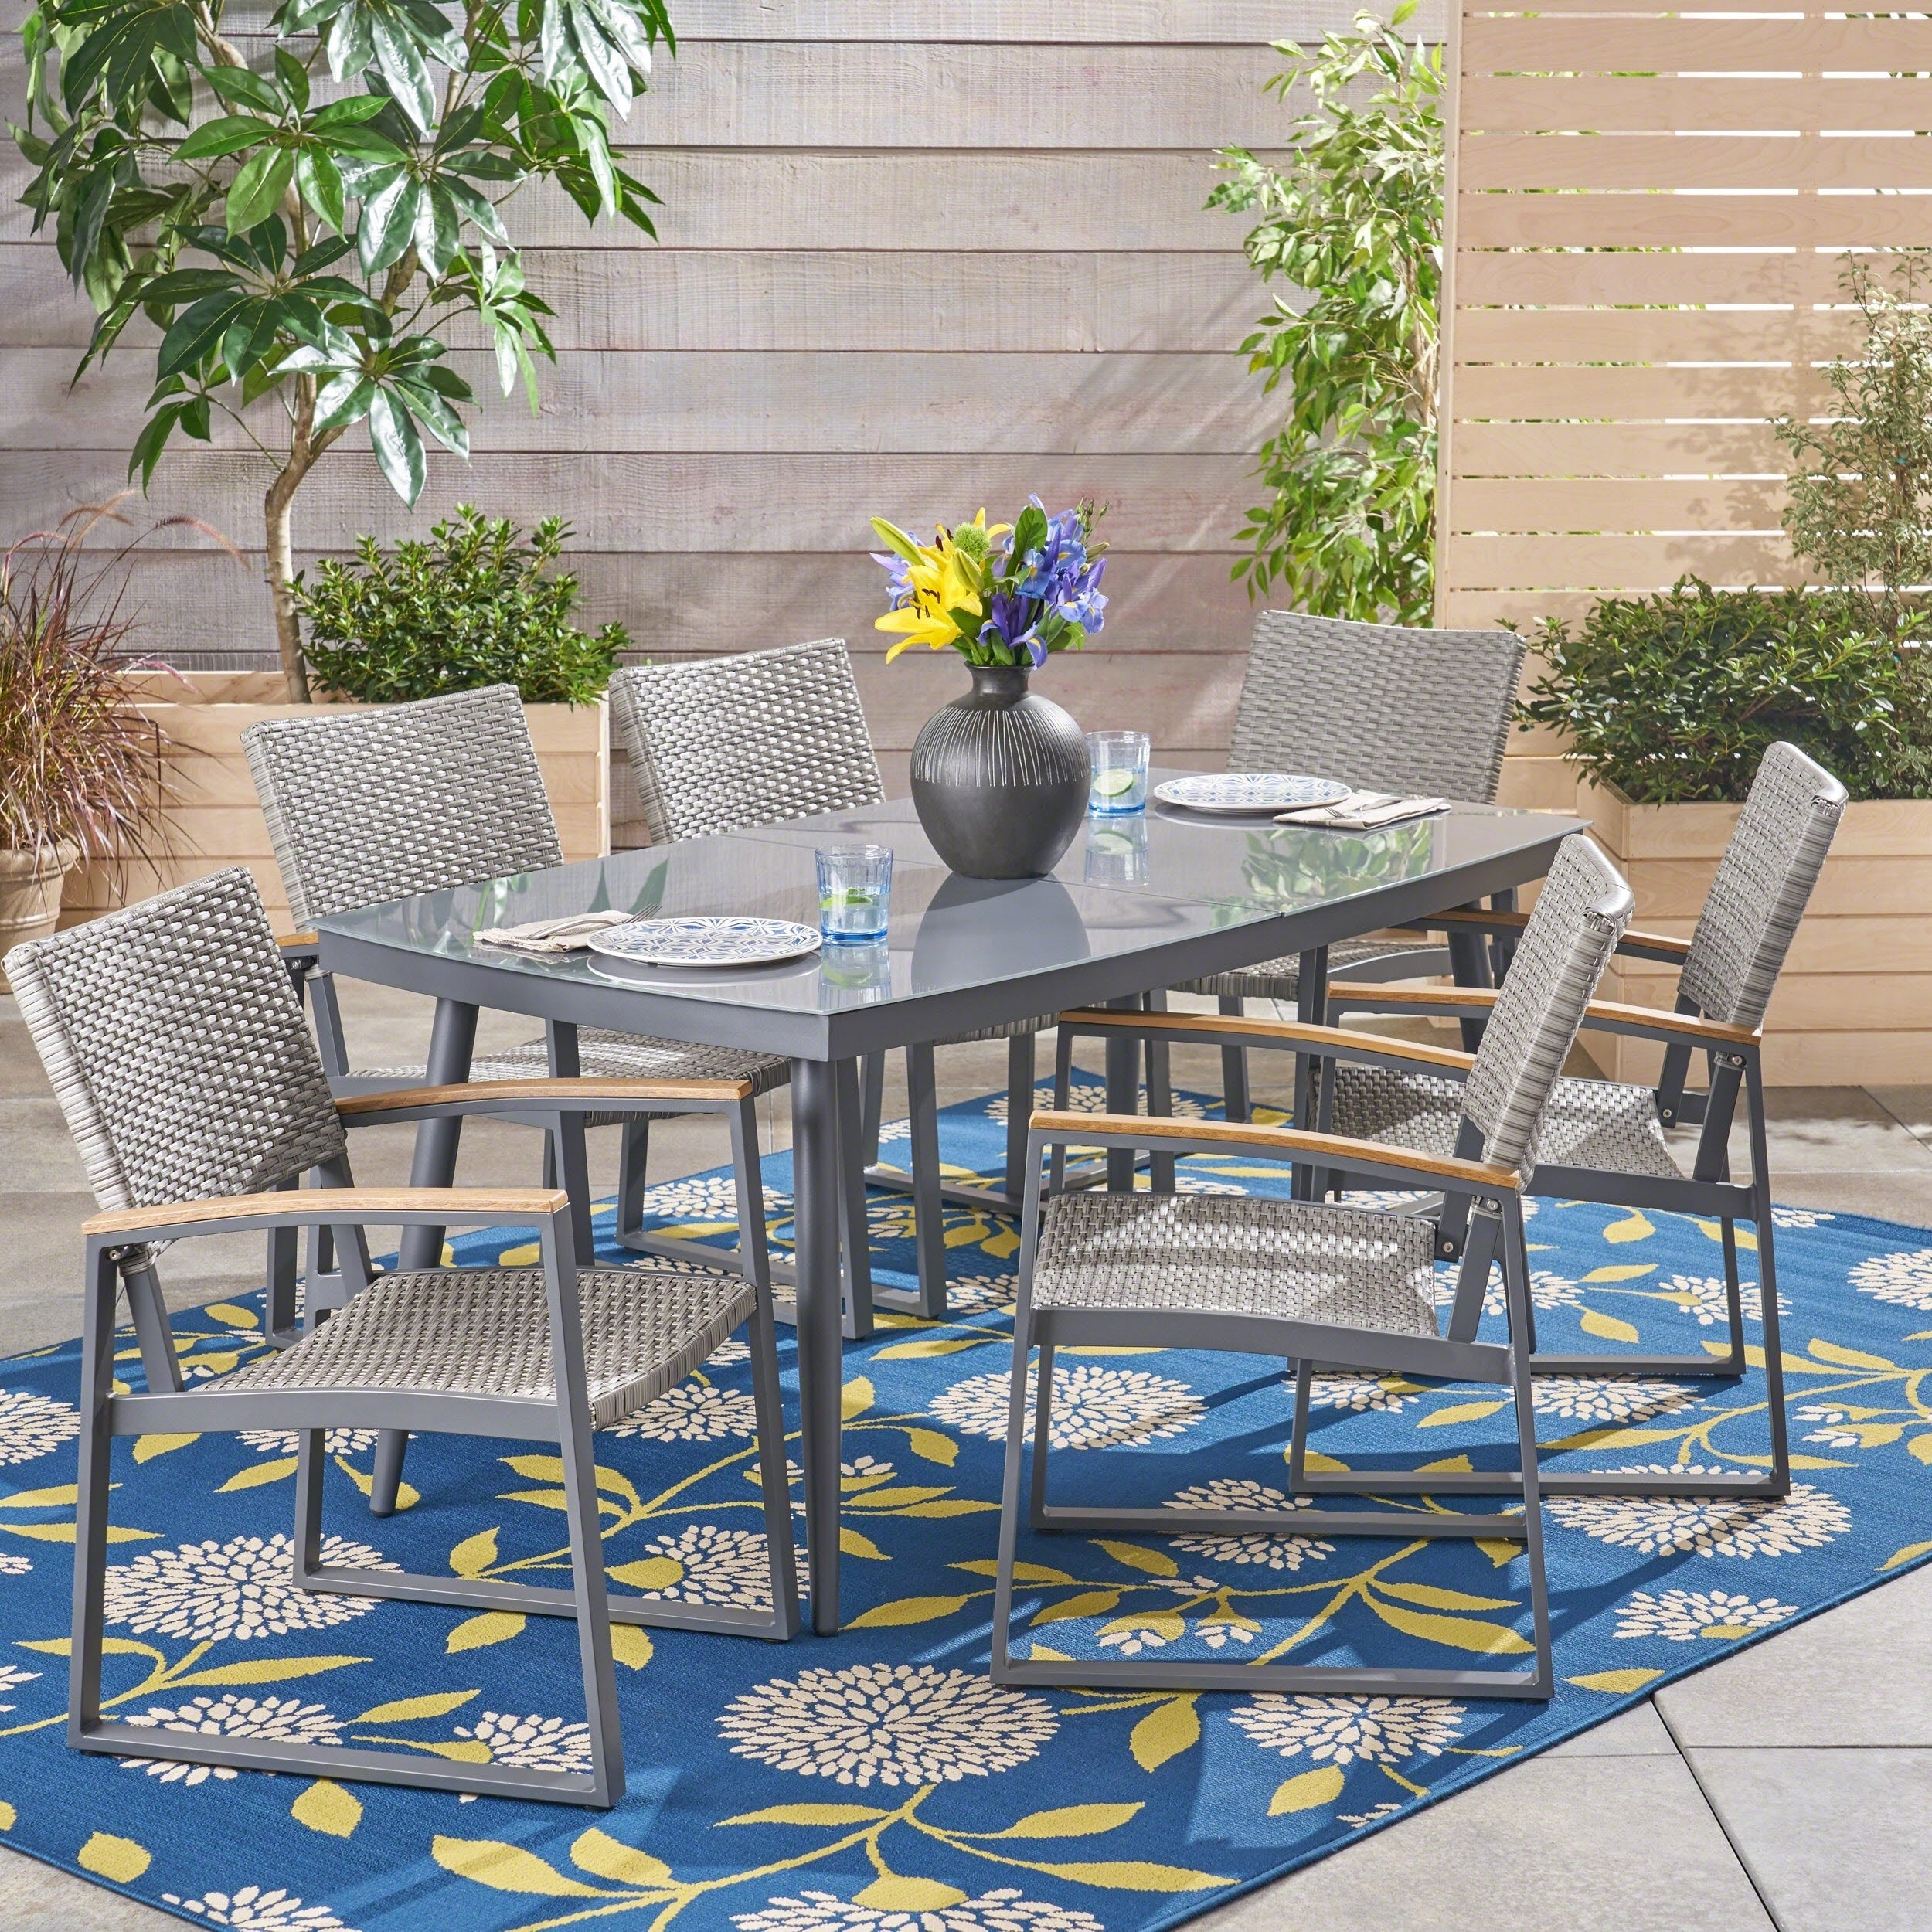 Manchester Outdoor 7 Piece Aluminum And Wicker Dining Set With Glass Top By Christopher Knight Home Overstock 22208034